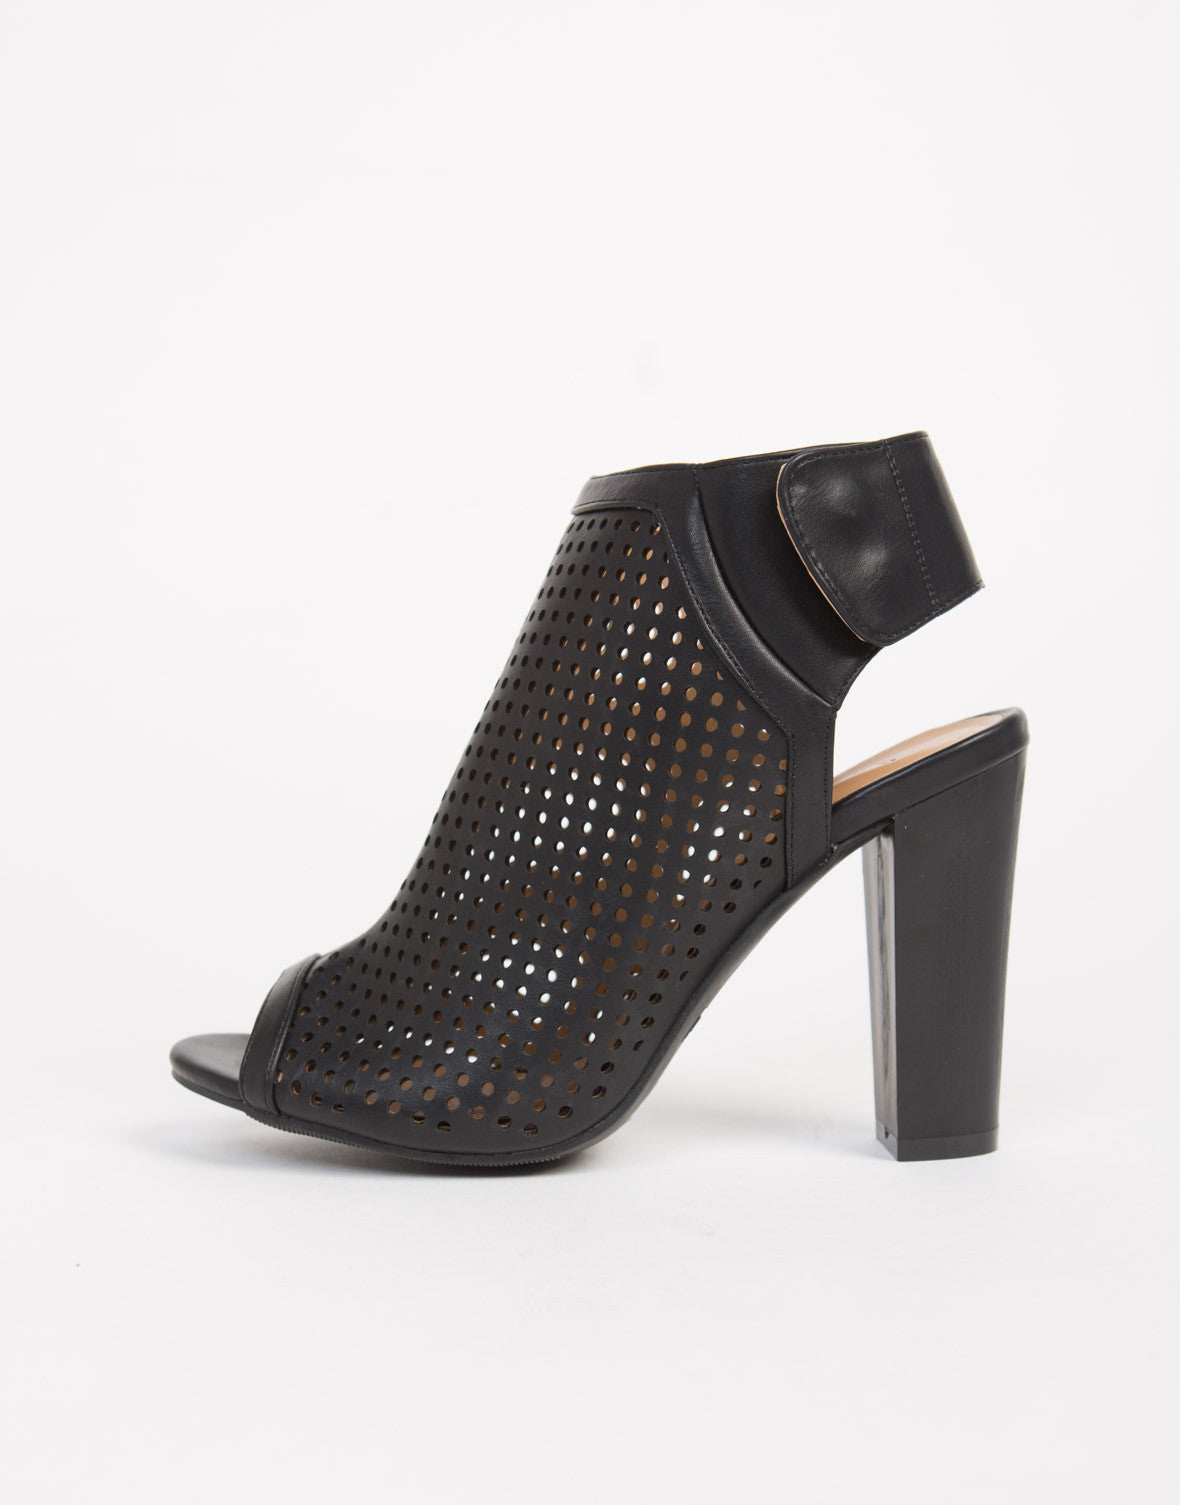 Perforated Peep Toe Mule Heels